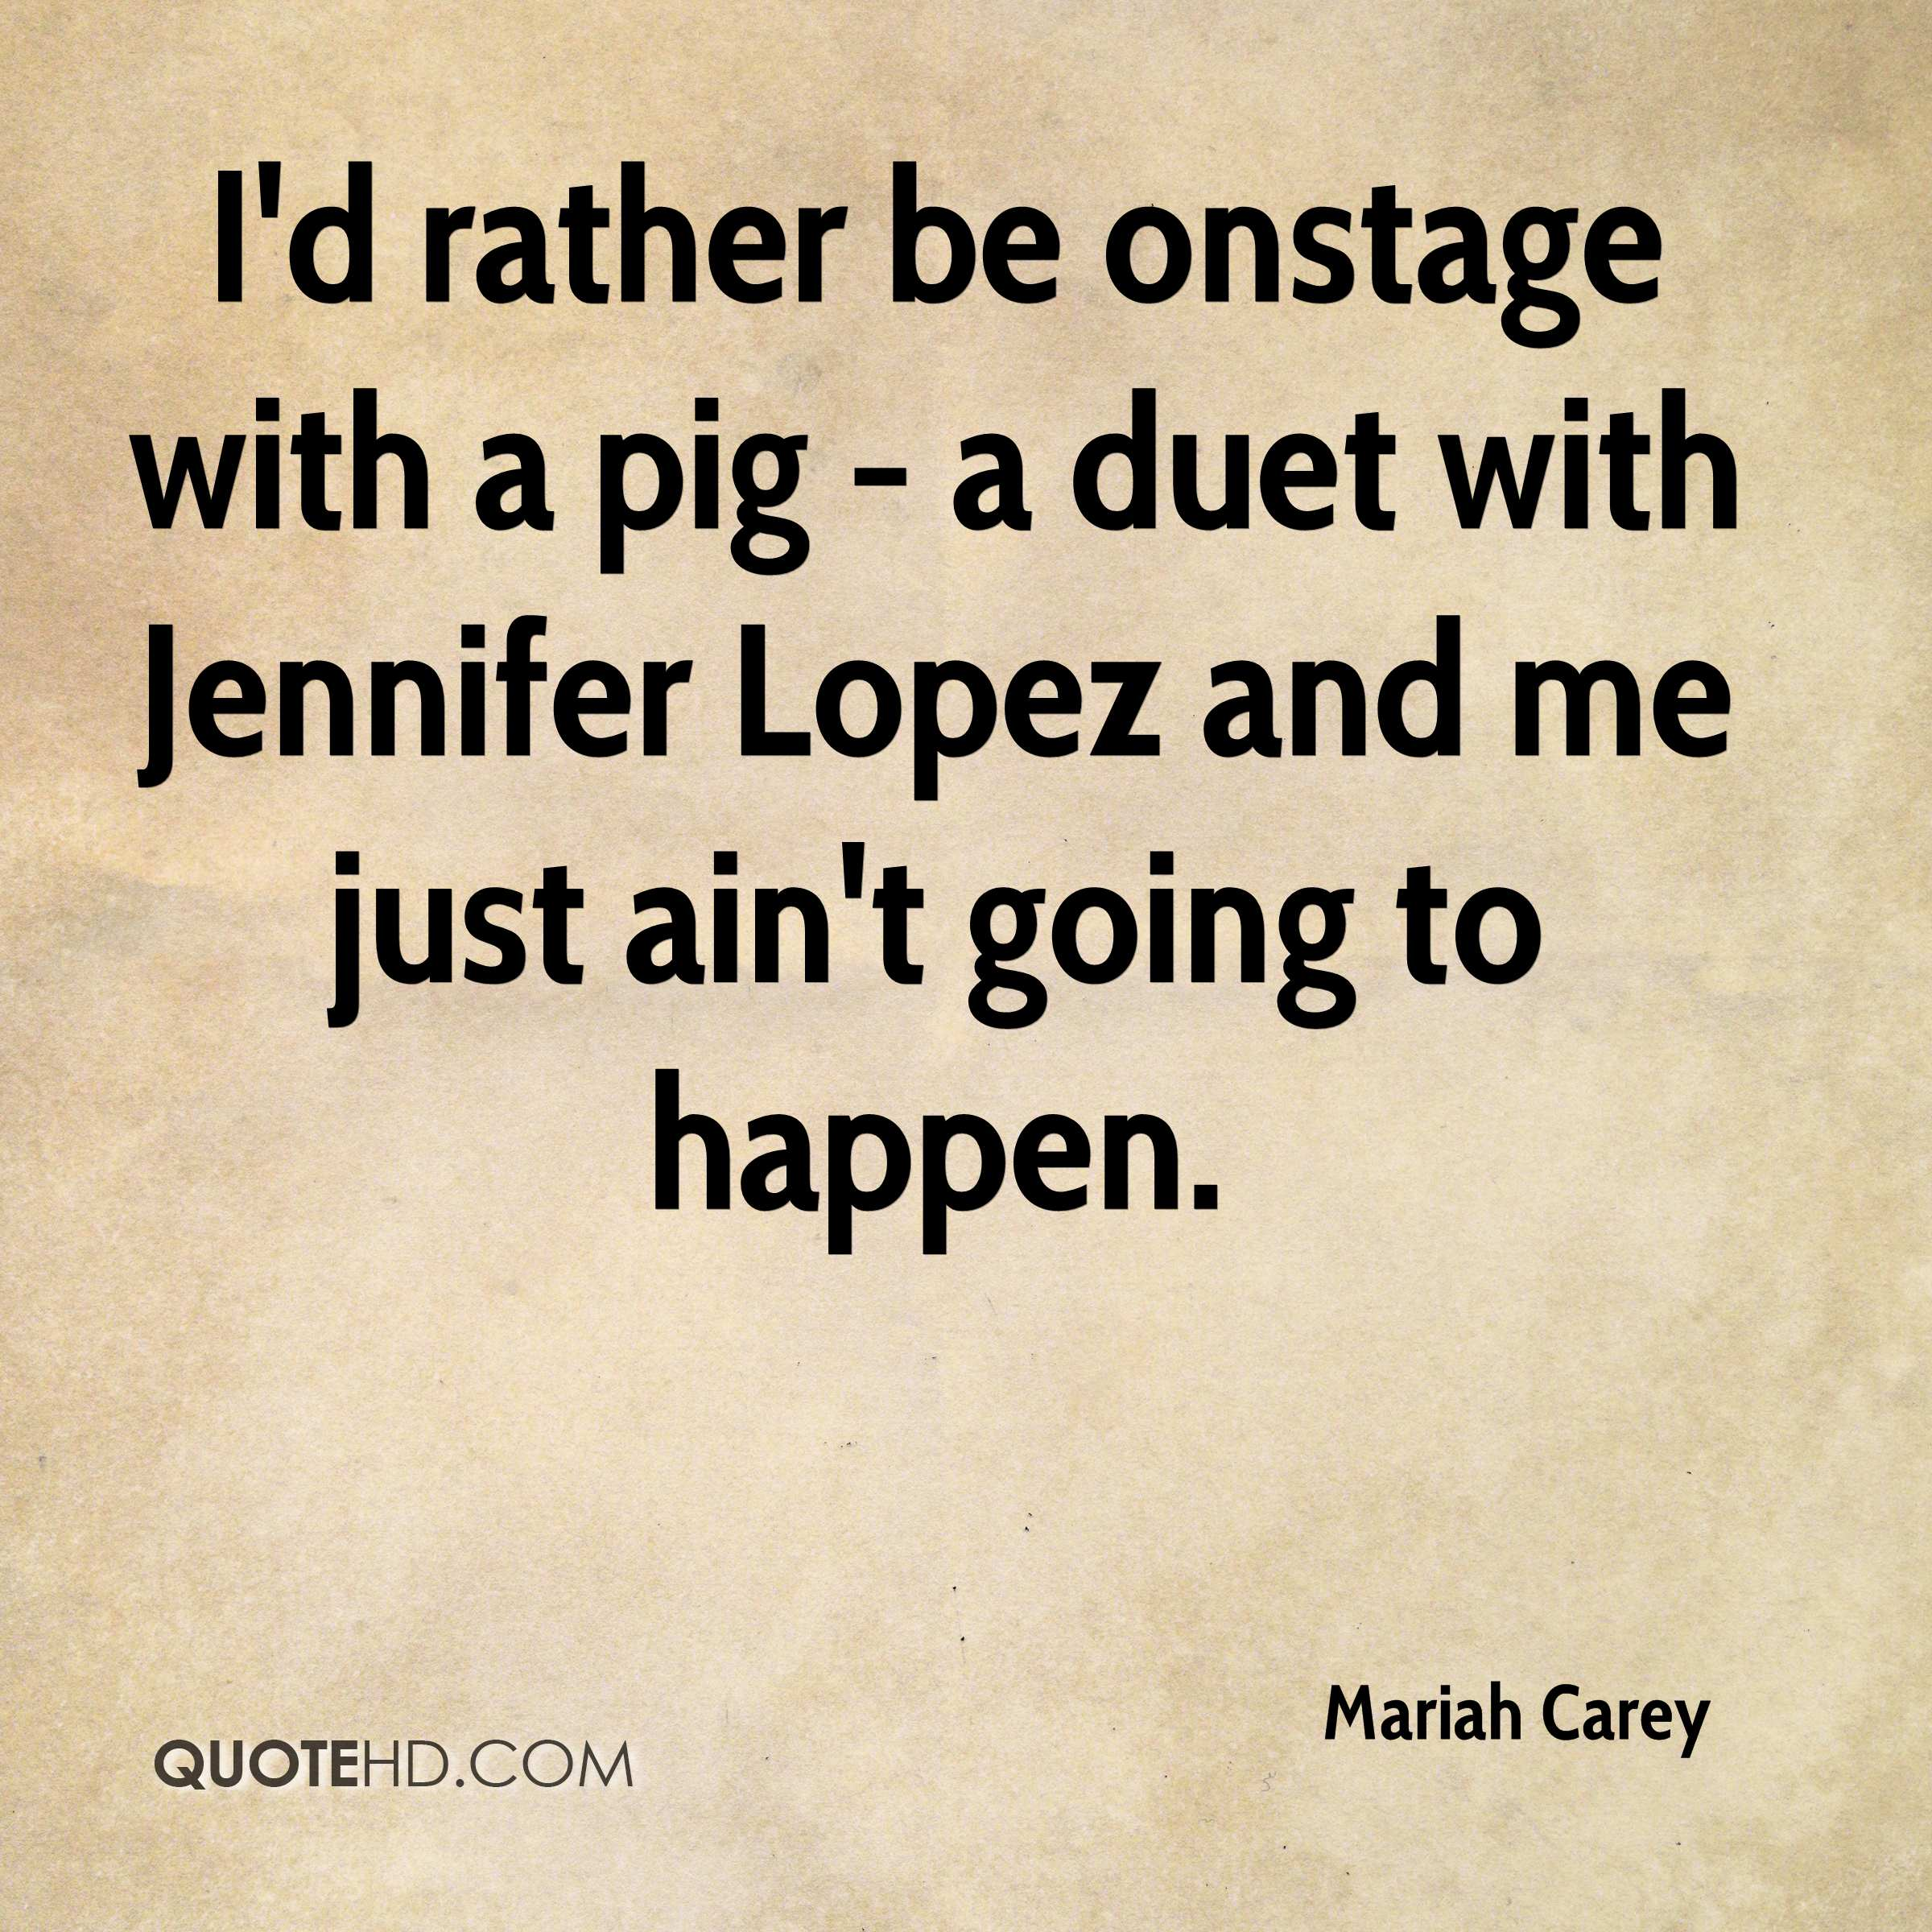 I'd rather be onstage with a pig - a duet with Jennifer Lopez and me just ain't going to happen.